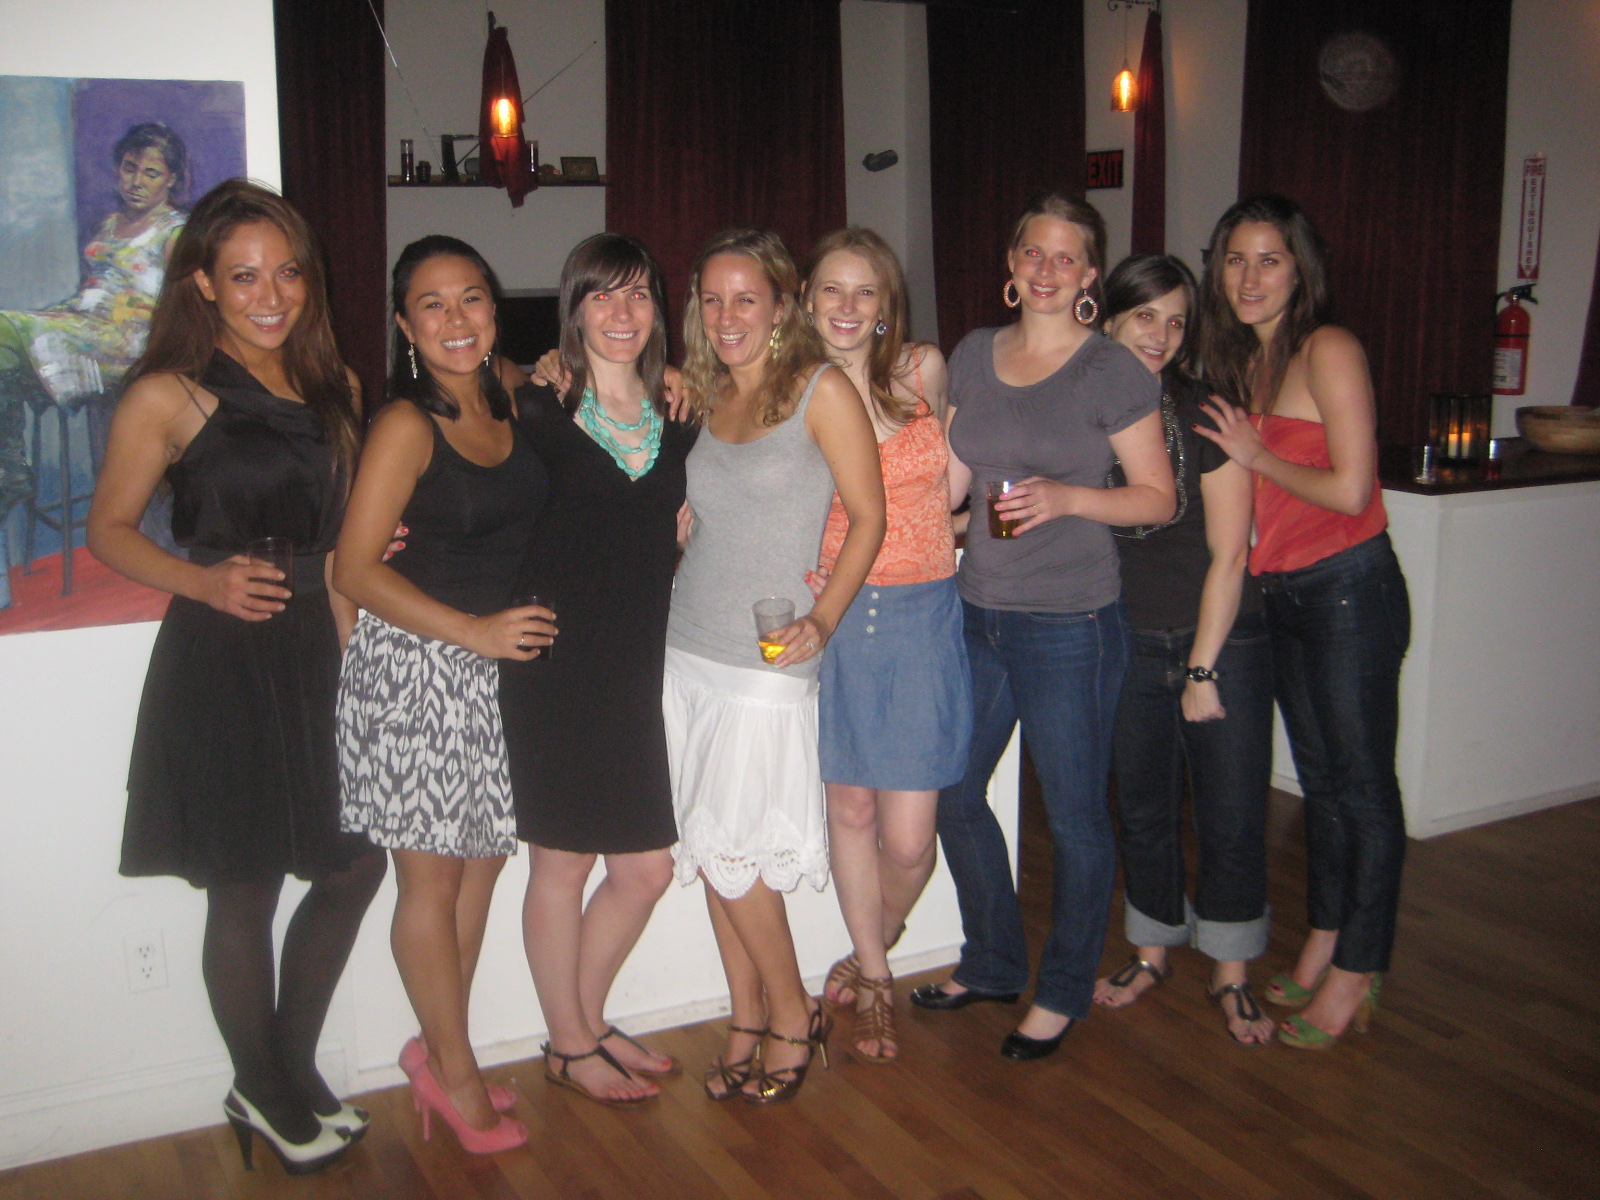 That039s what i call bachelorette party - 2 part 1